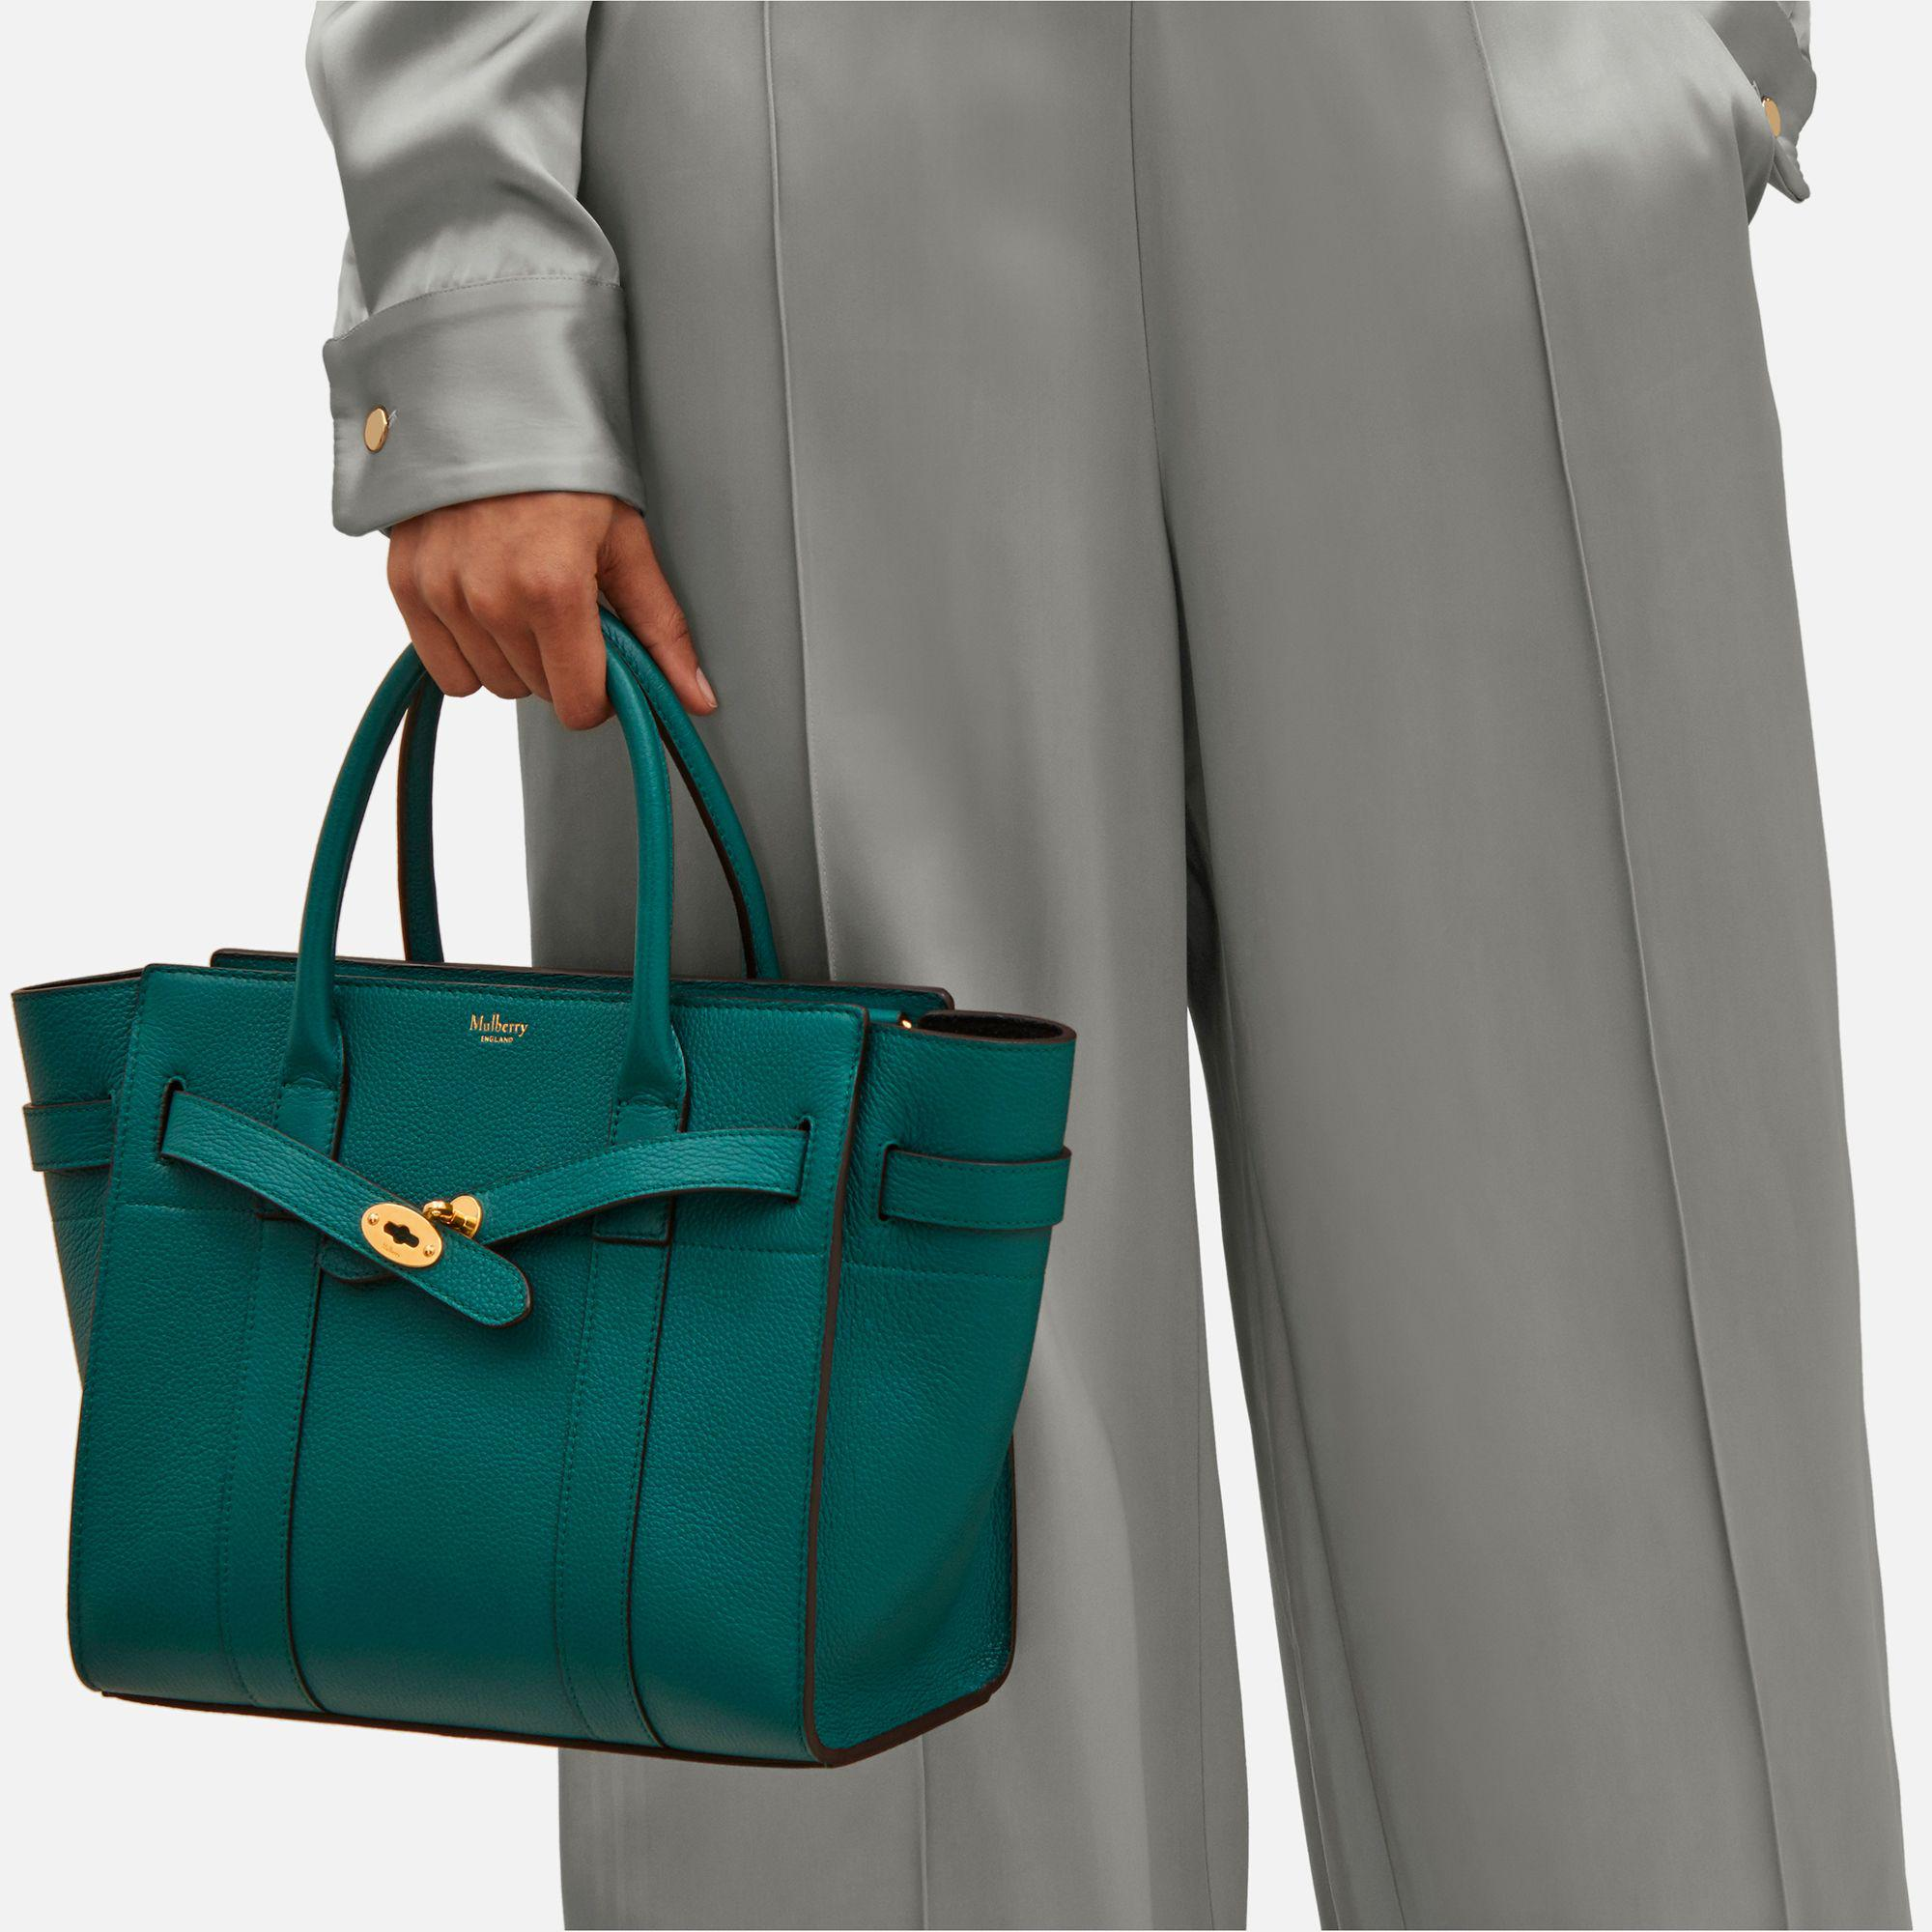 23cc3a9323b Mulberry Small Zipped Bayswater in Green - Lyst